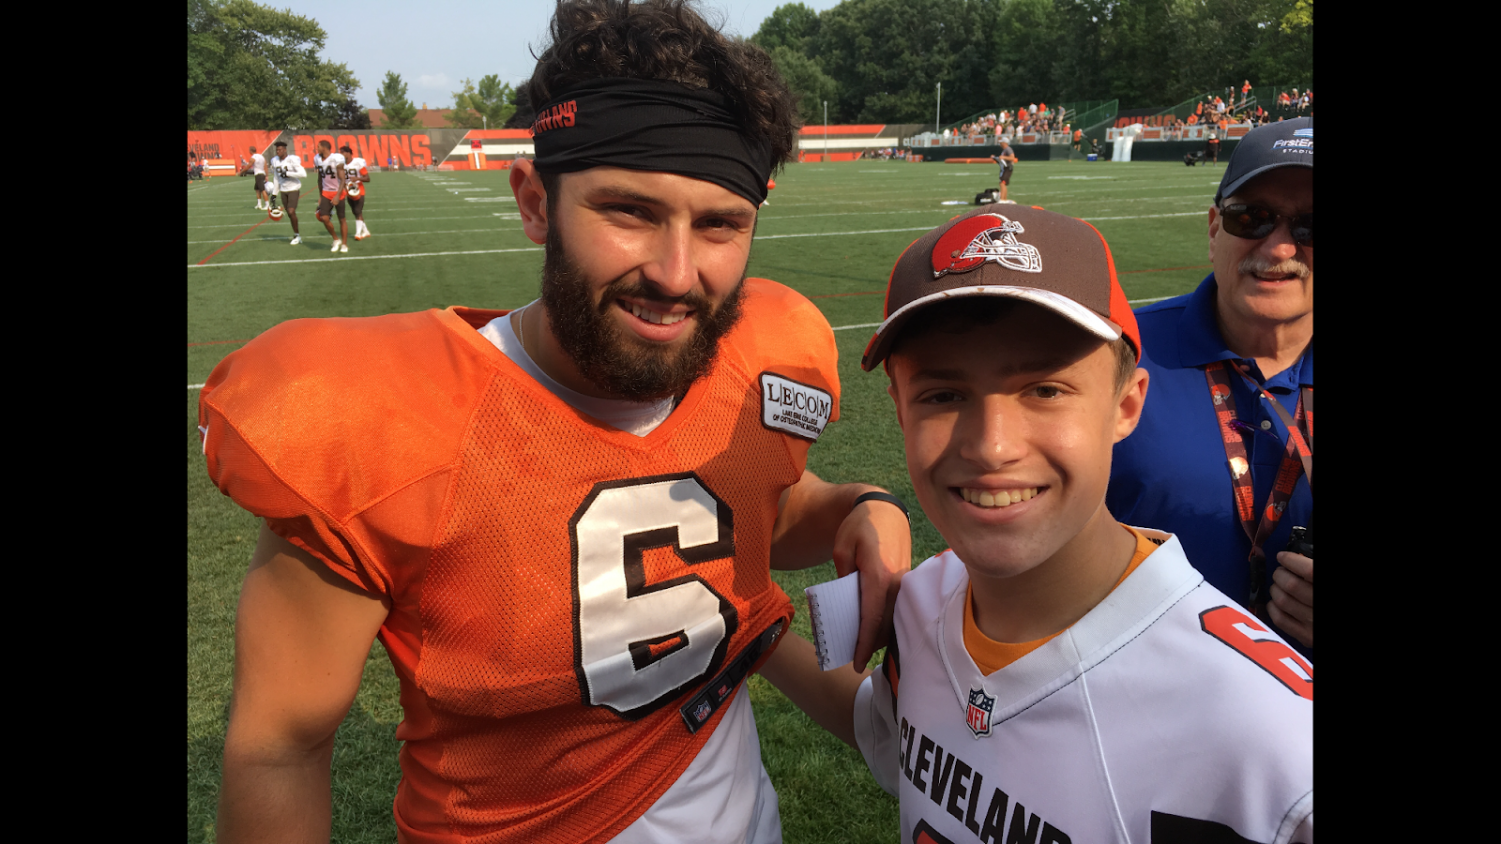 DiFranco [pictured on the right] snaps a photo with Browns rookie quarterback Baker Mayfield during training camp prior to the 2018 NFL season.